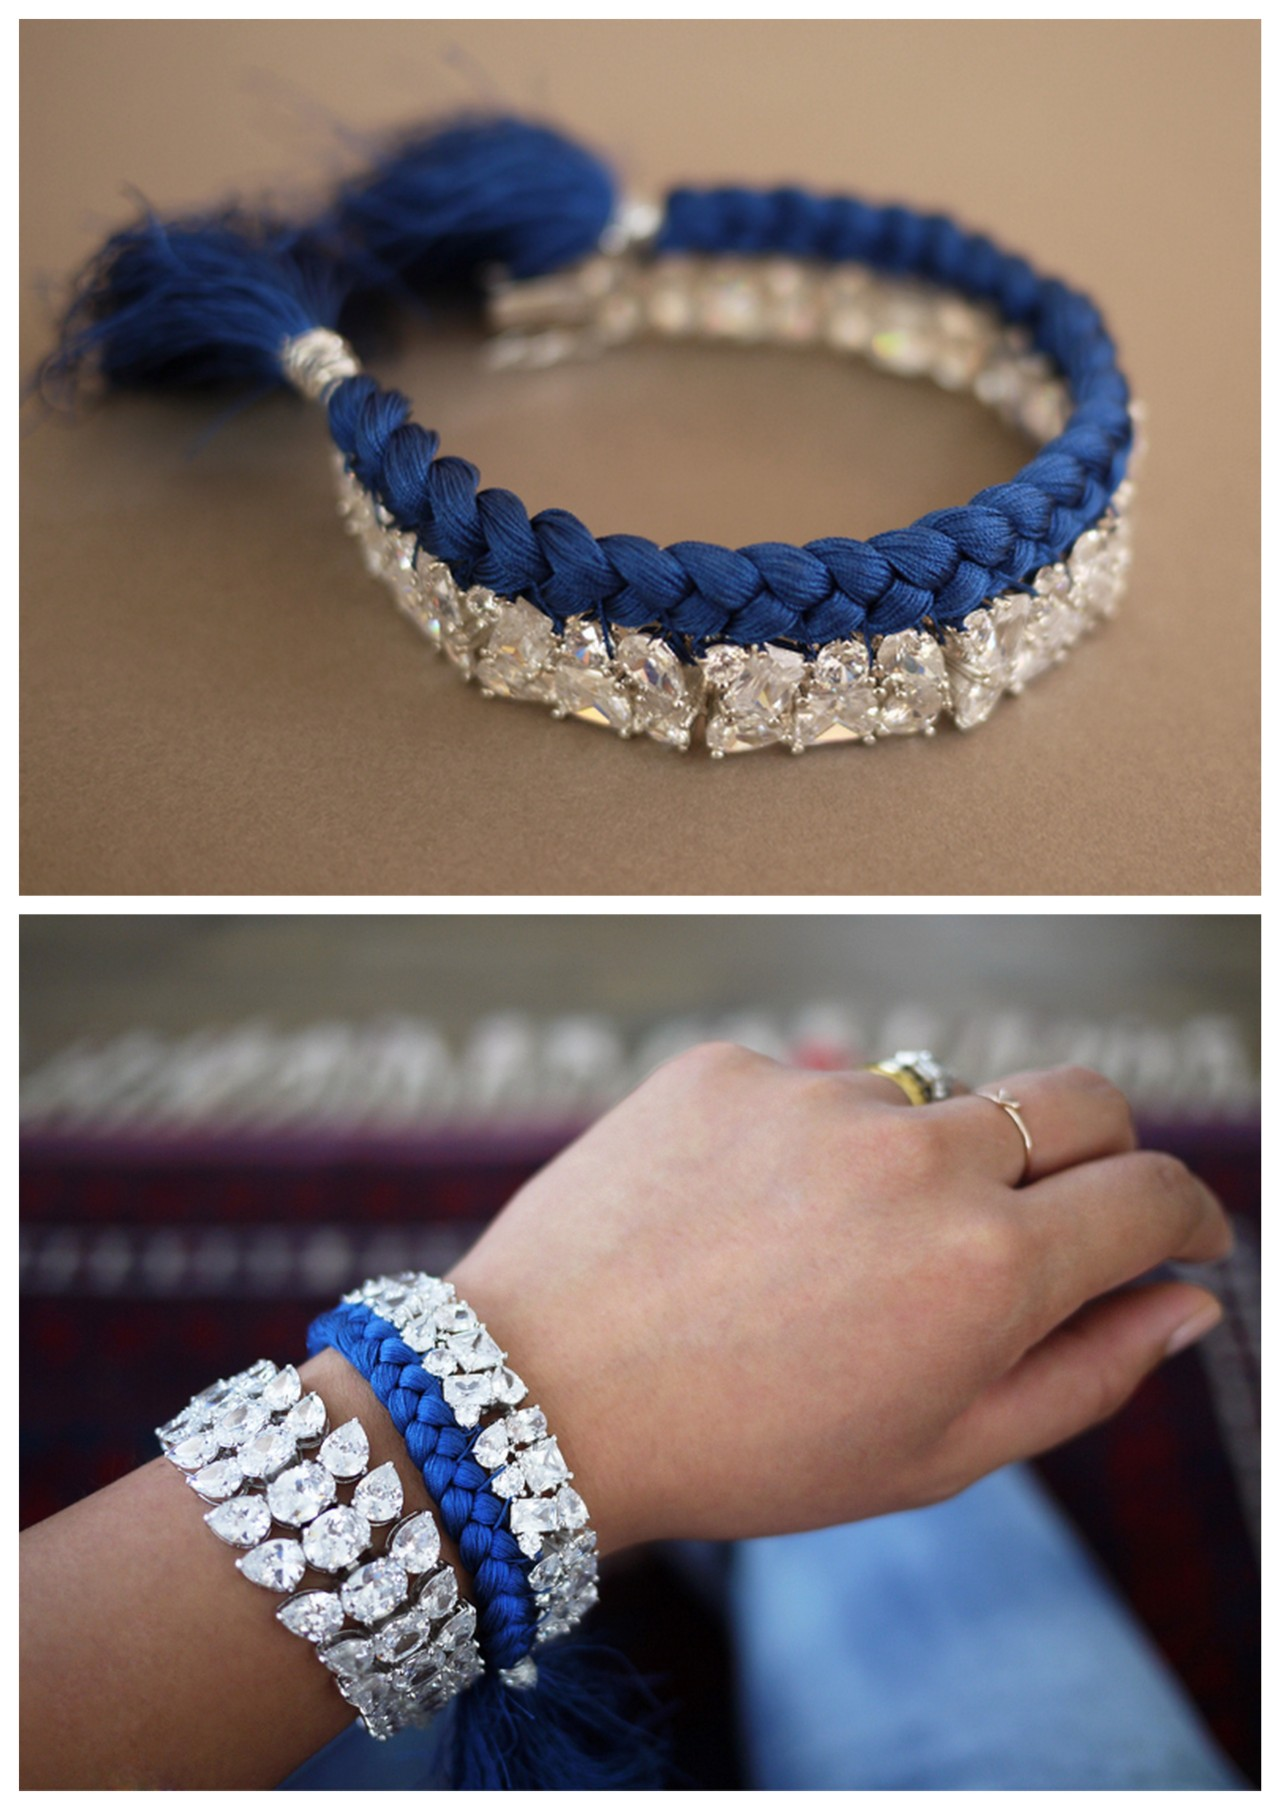 truebluemeandyou:  DIY Easy Braided Silk Thread Rhinestone Bracelet Tutorial from Honestly…WTF here. Pick up a cheap rhinestone bracelet from anywhere and upgrade it with this really easy and well explained tutorial. As always, for pages more of DIY bracelets go here: truebluemeandyou.tumblr.com/tagged/bracelet **For identical bracelet and necklace tutorials of this Jolita inspired braclet go here: truebluemeandyou.tumblr.com/tagged/jolita  I want to make one of these!